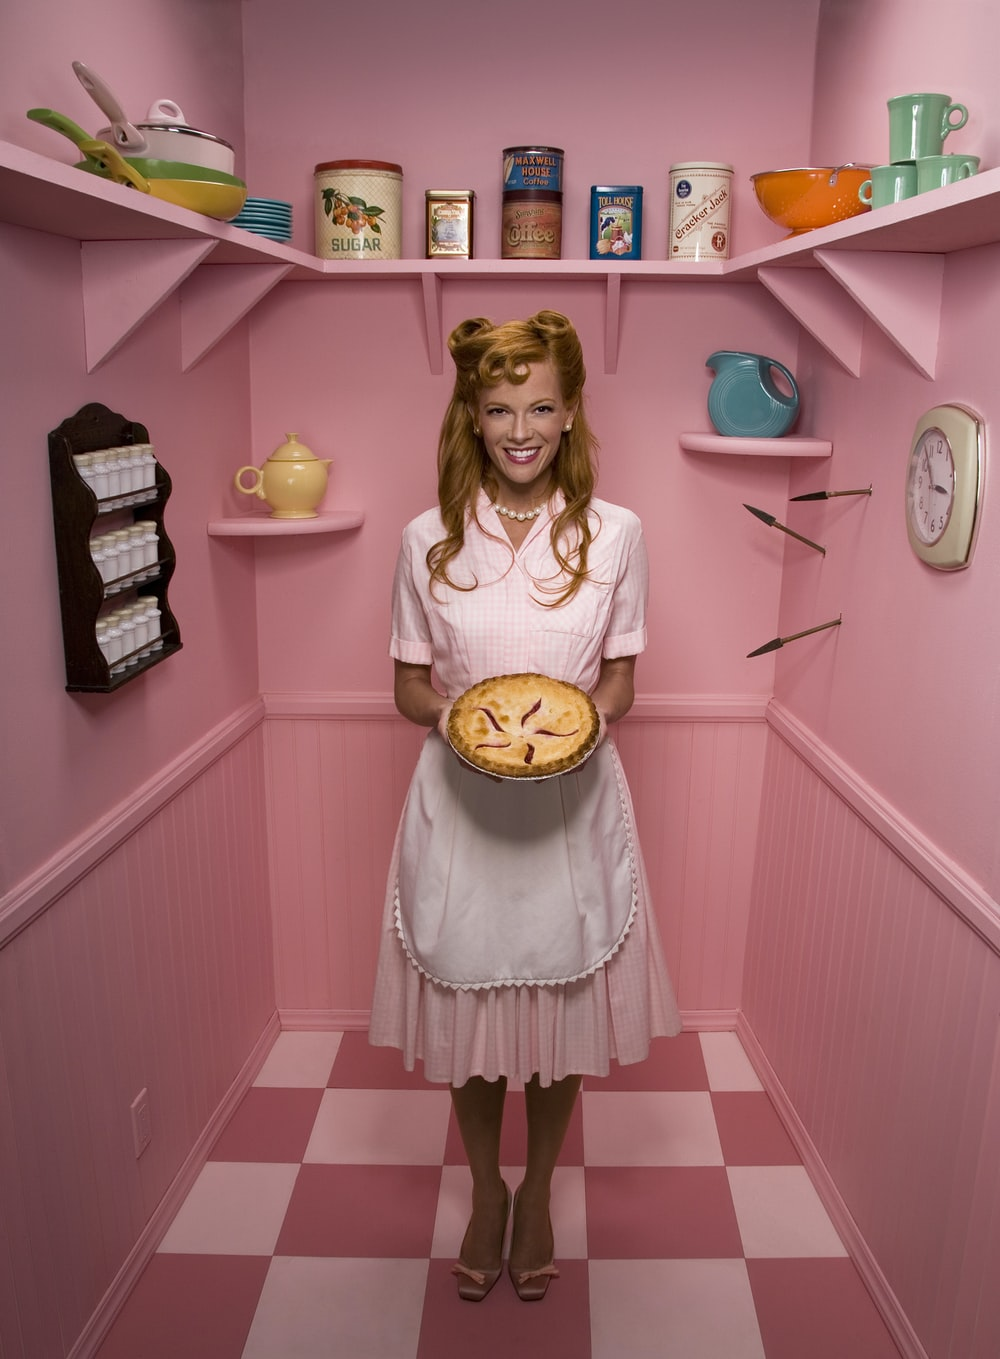 woman holding pie in storage room